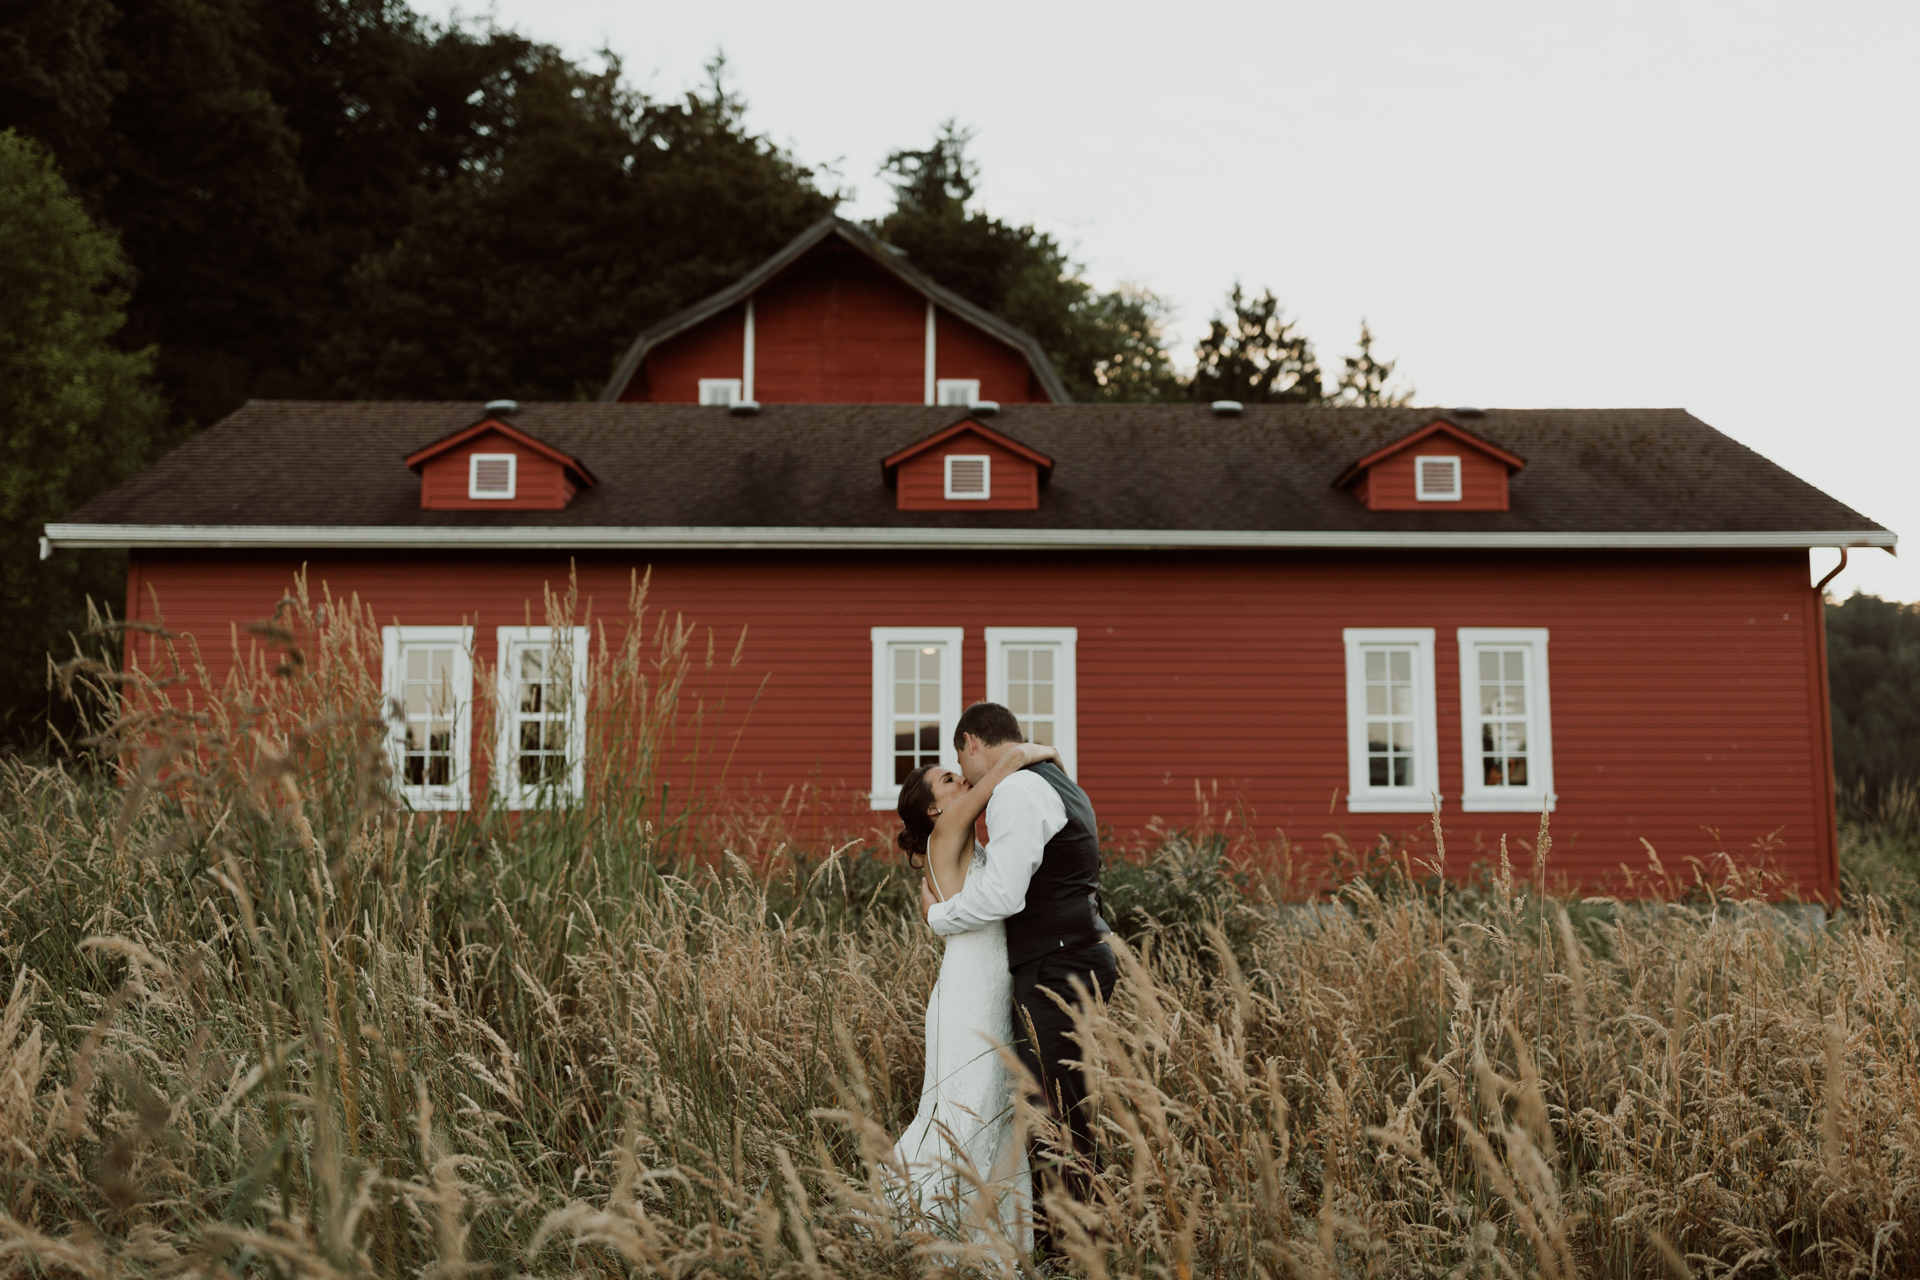 marionfield-farm-washington-barn-wedding-76.jpg